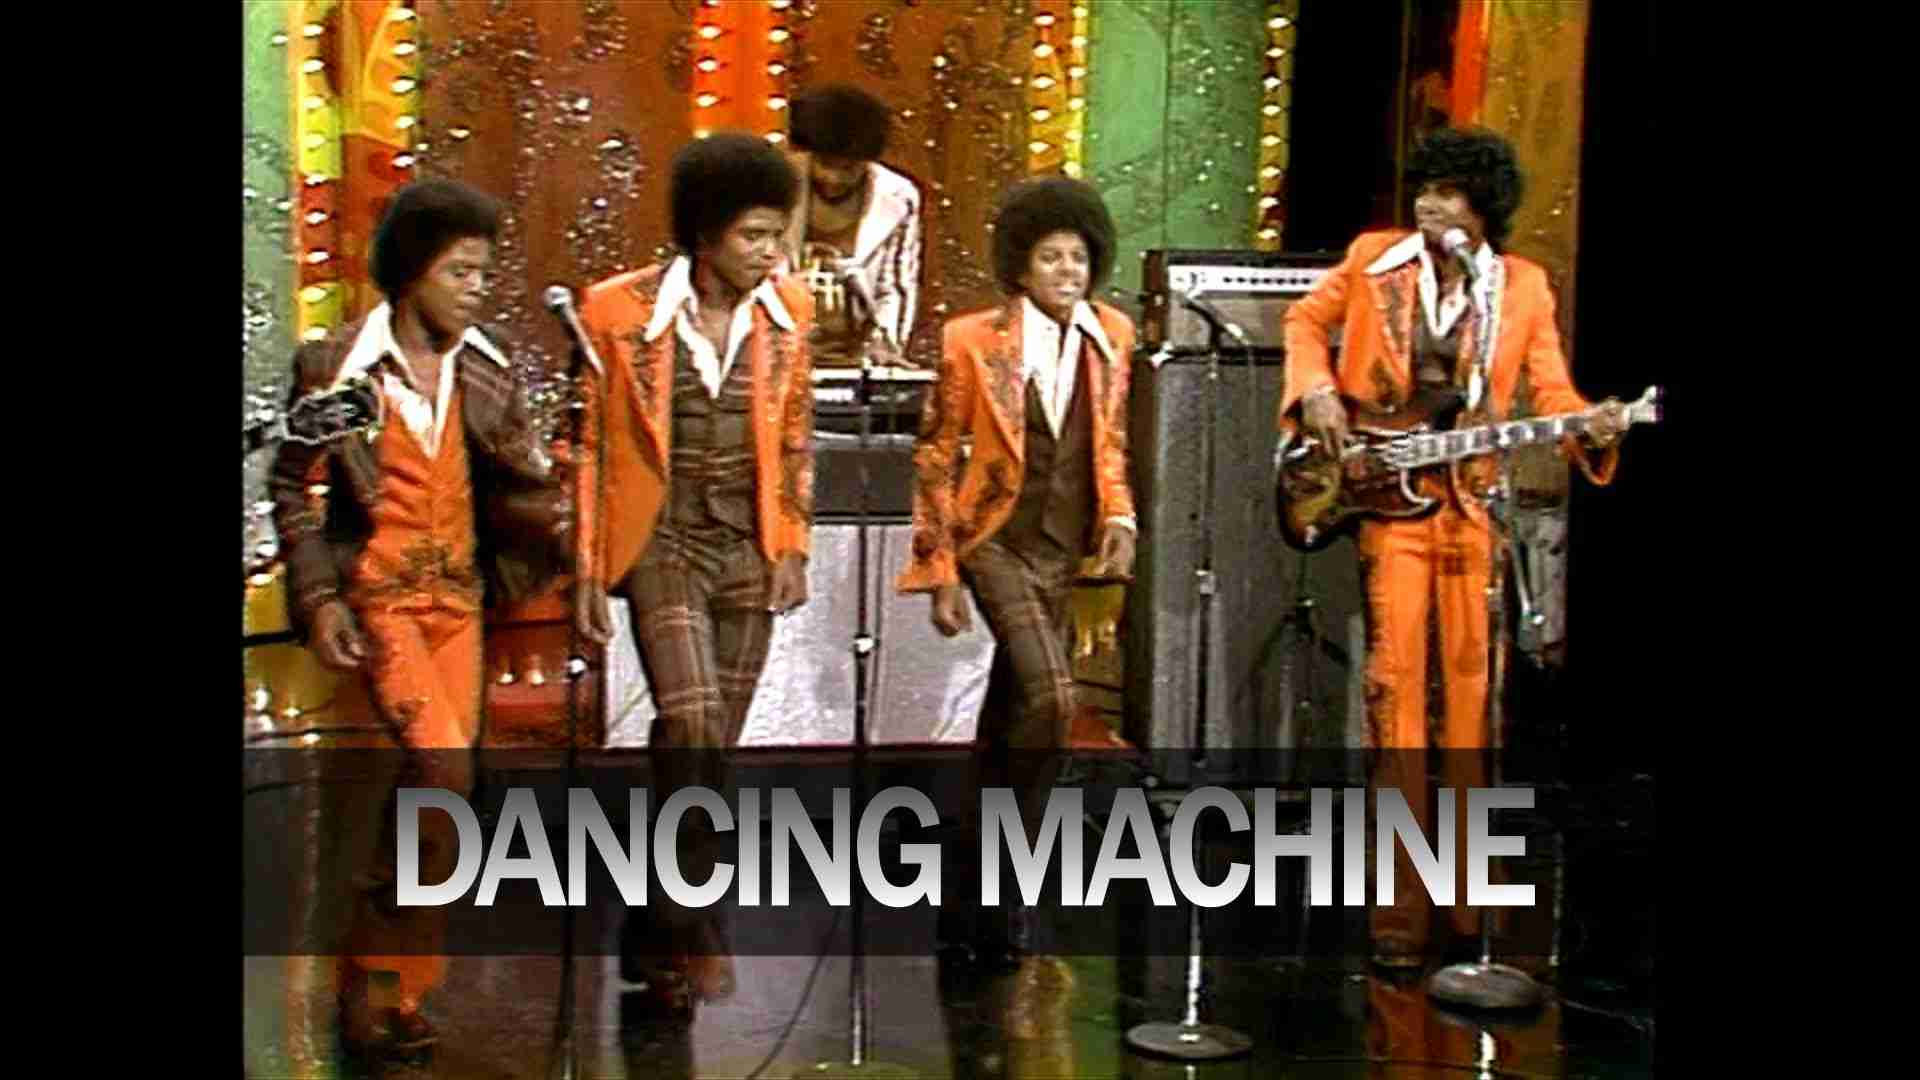 The Jackson 5 - Dancing Machine - Tonight Show with Johnny Carson 1974 - YouTube